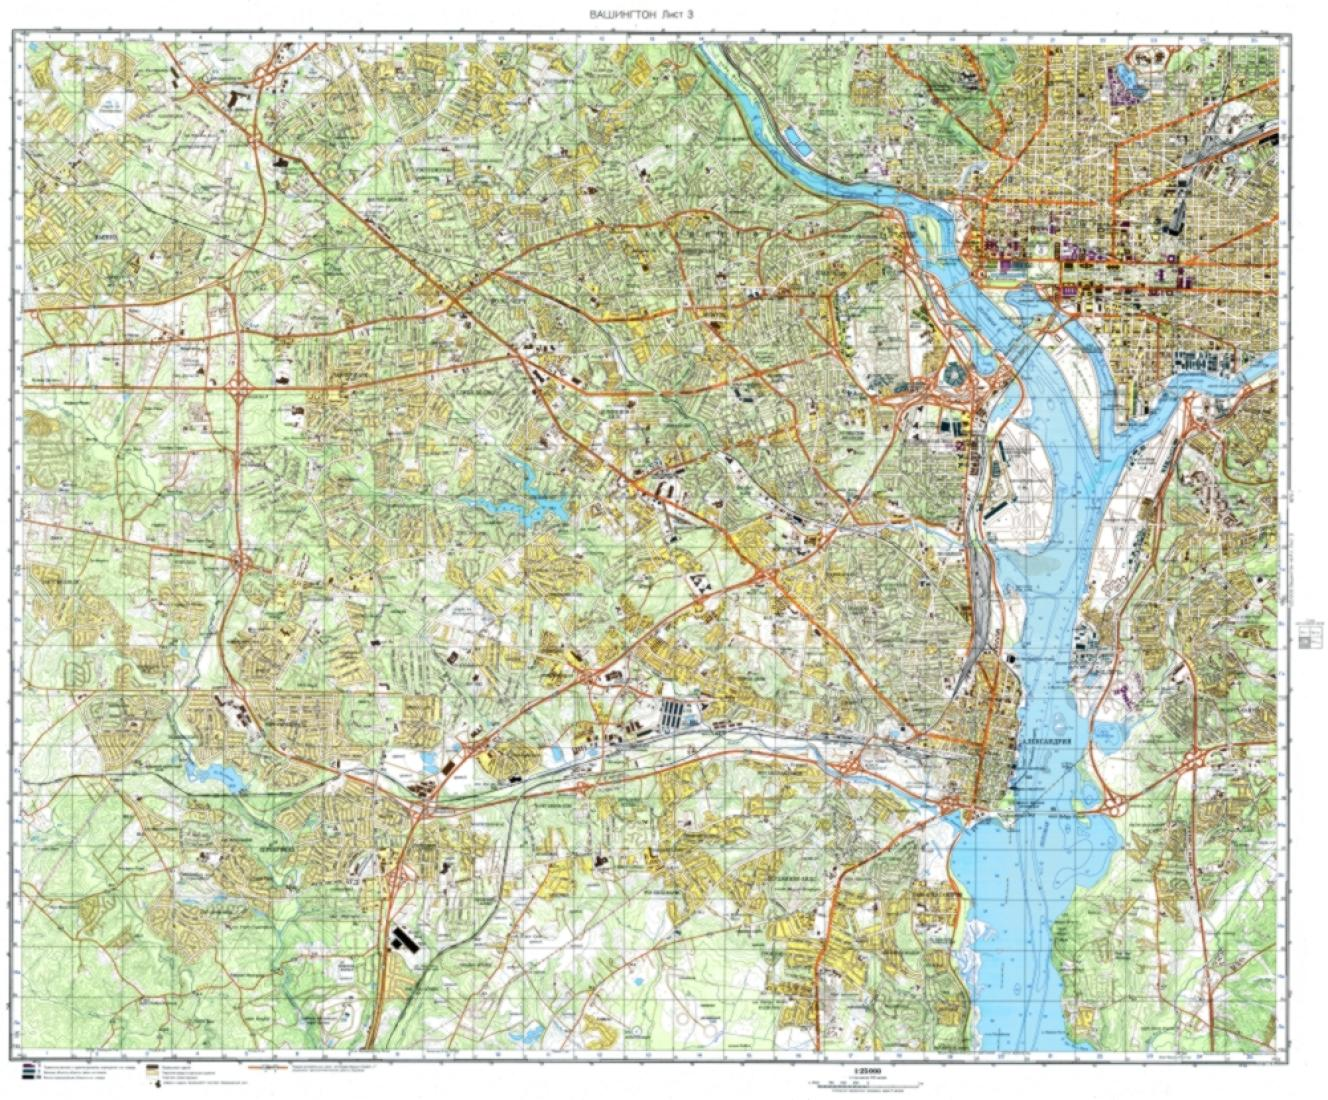 Washington, DC, Cold War Map, Sheet 3 of 4 by USSR Ministry of Defense